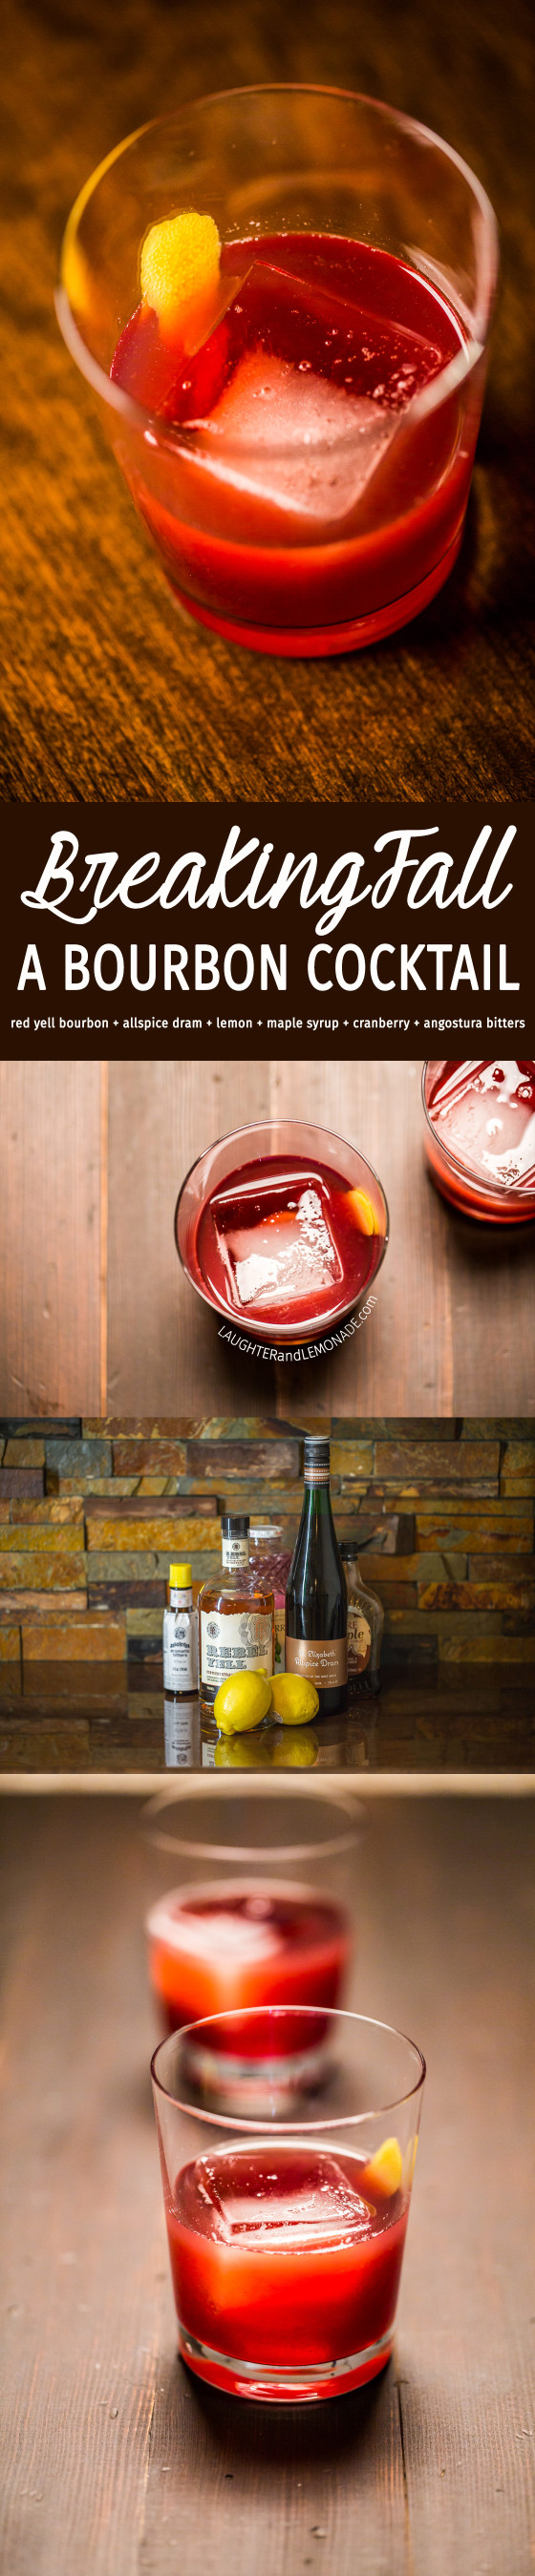 BreakingFall - Bourbon Cocktail | LaughterandLemonade.com